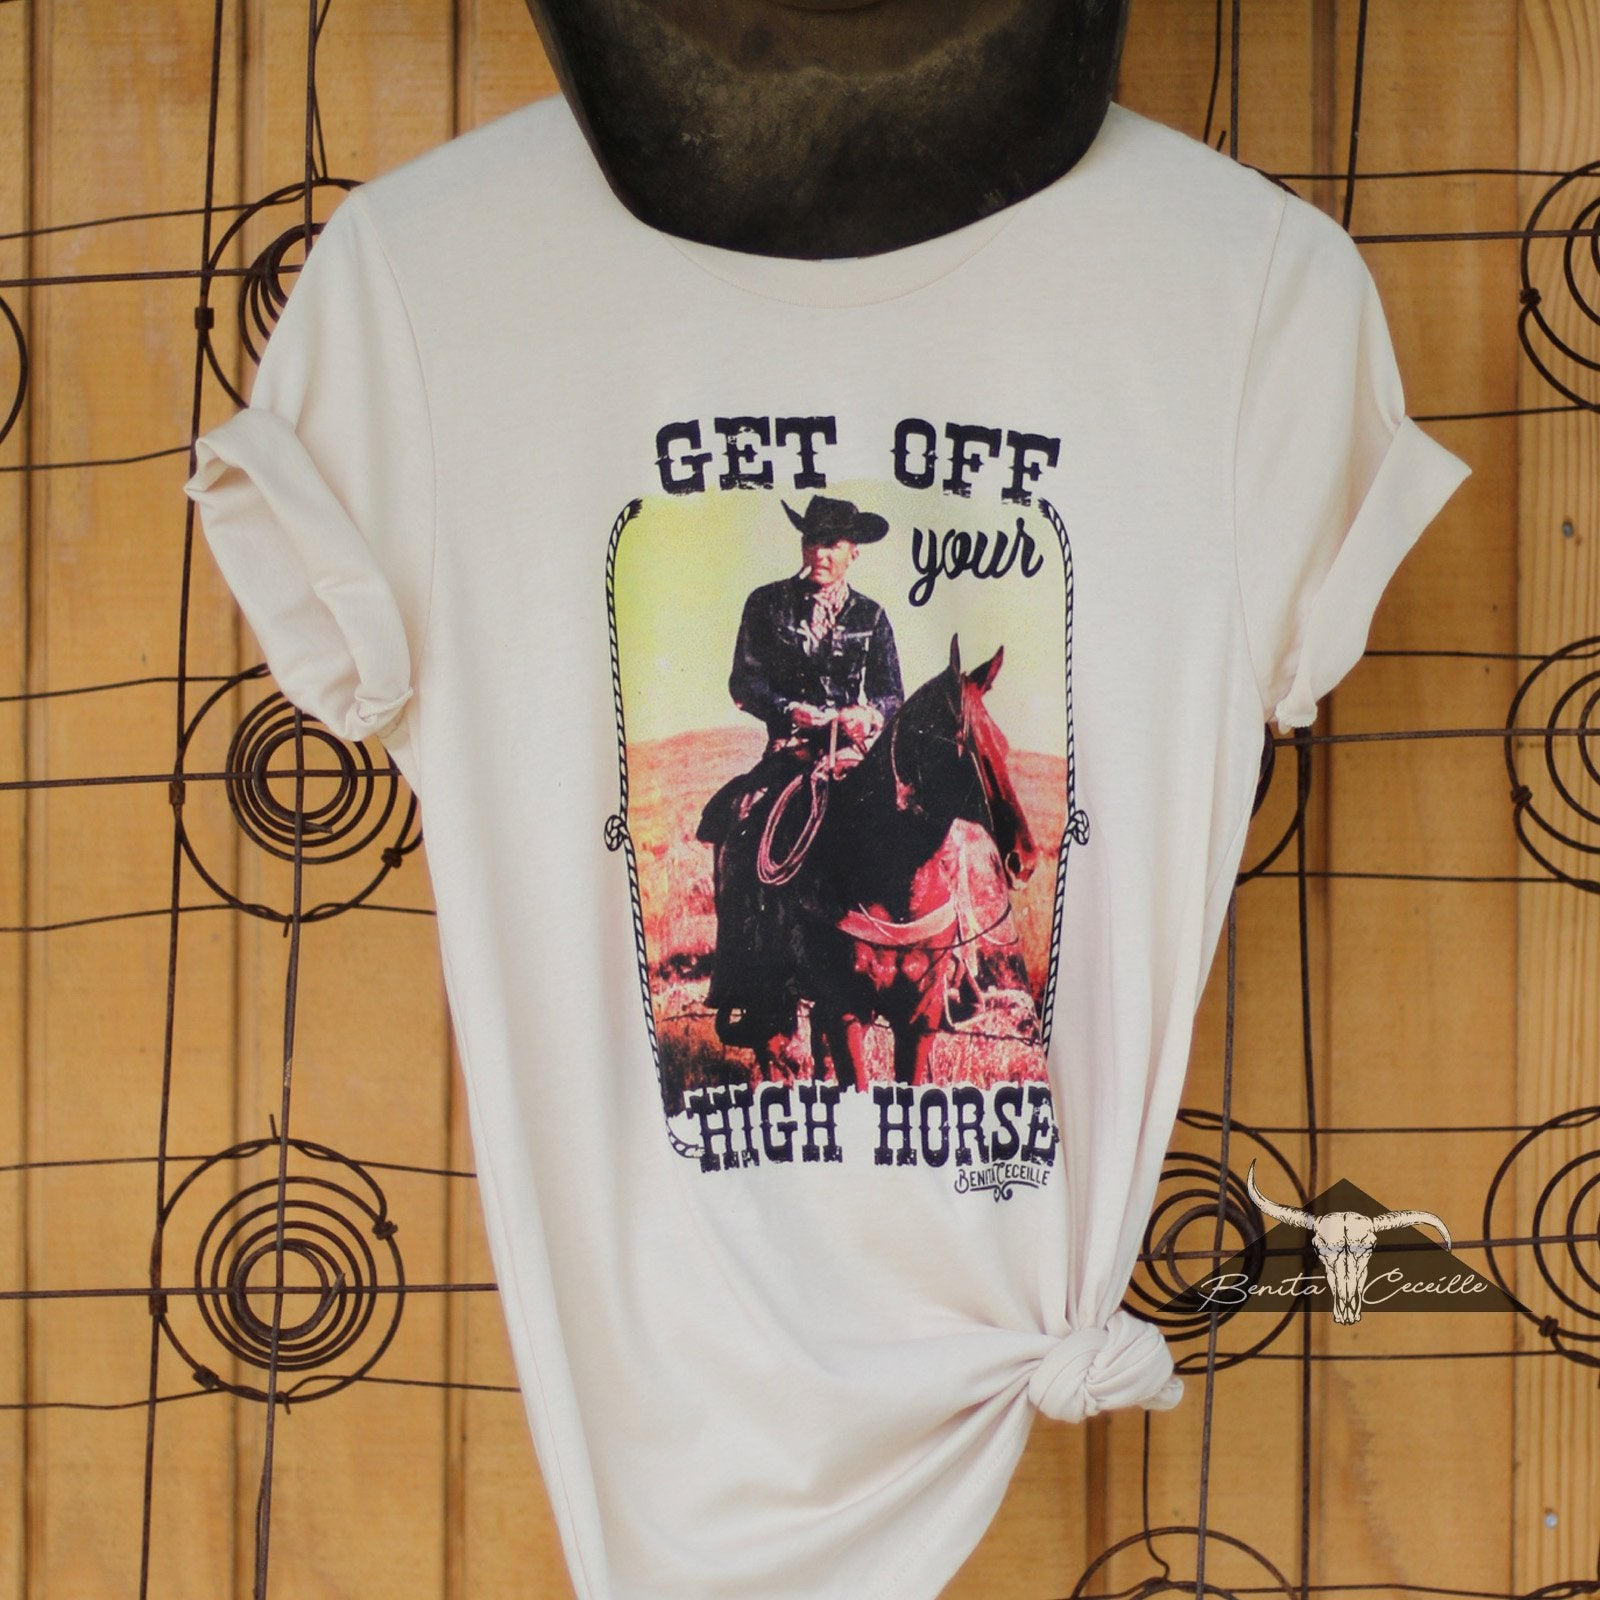 The High Horse T-shirt Cream, Benita Ceceille